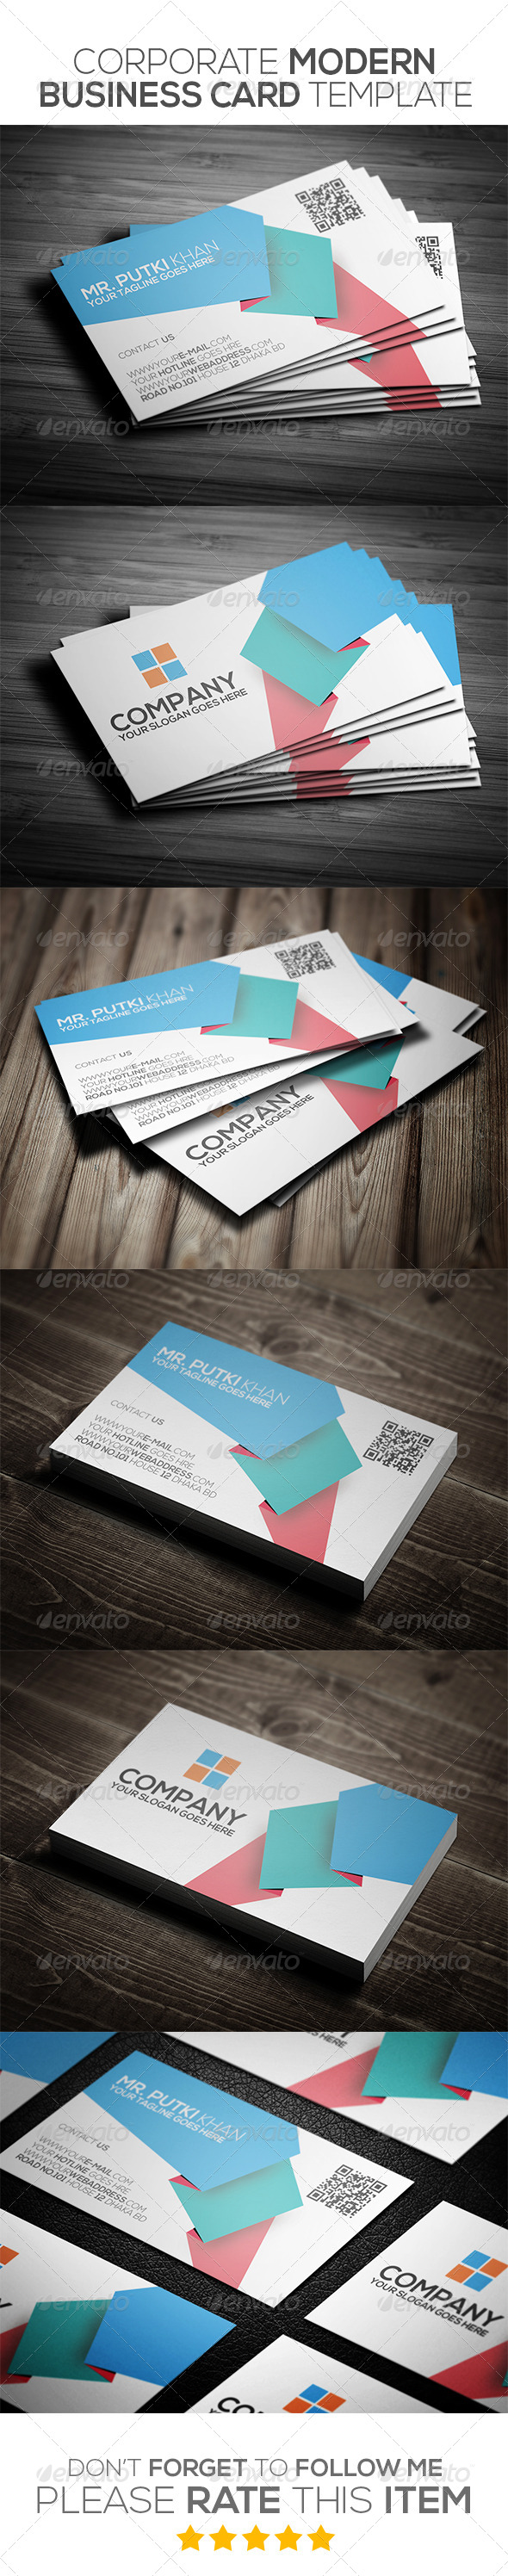 GraphicRiver Corporate Modern Business Card Template 6973456